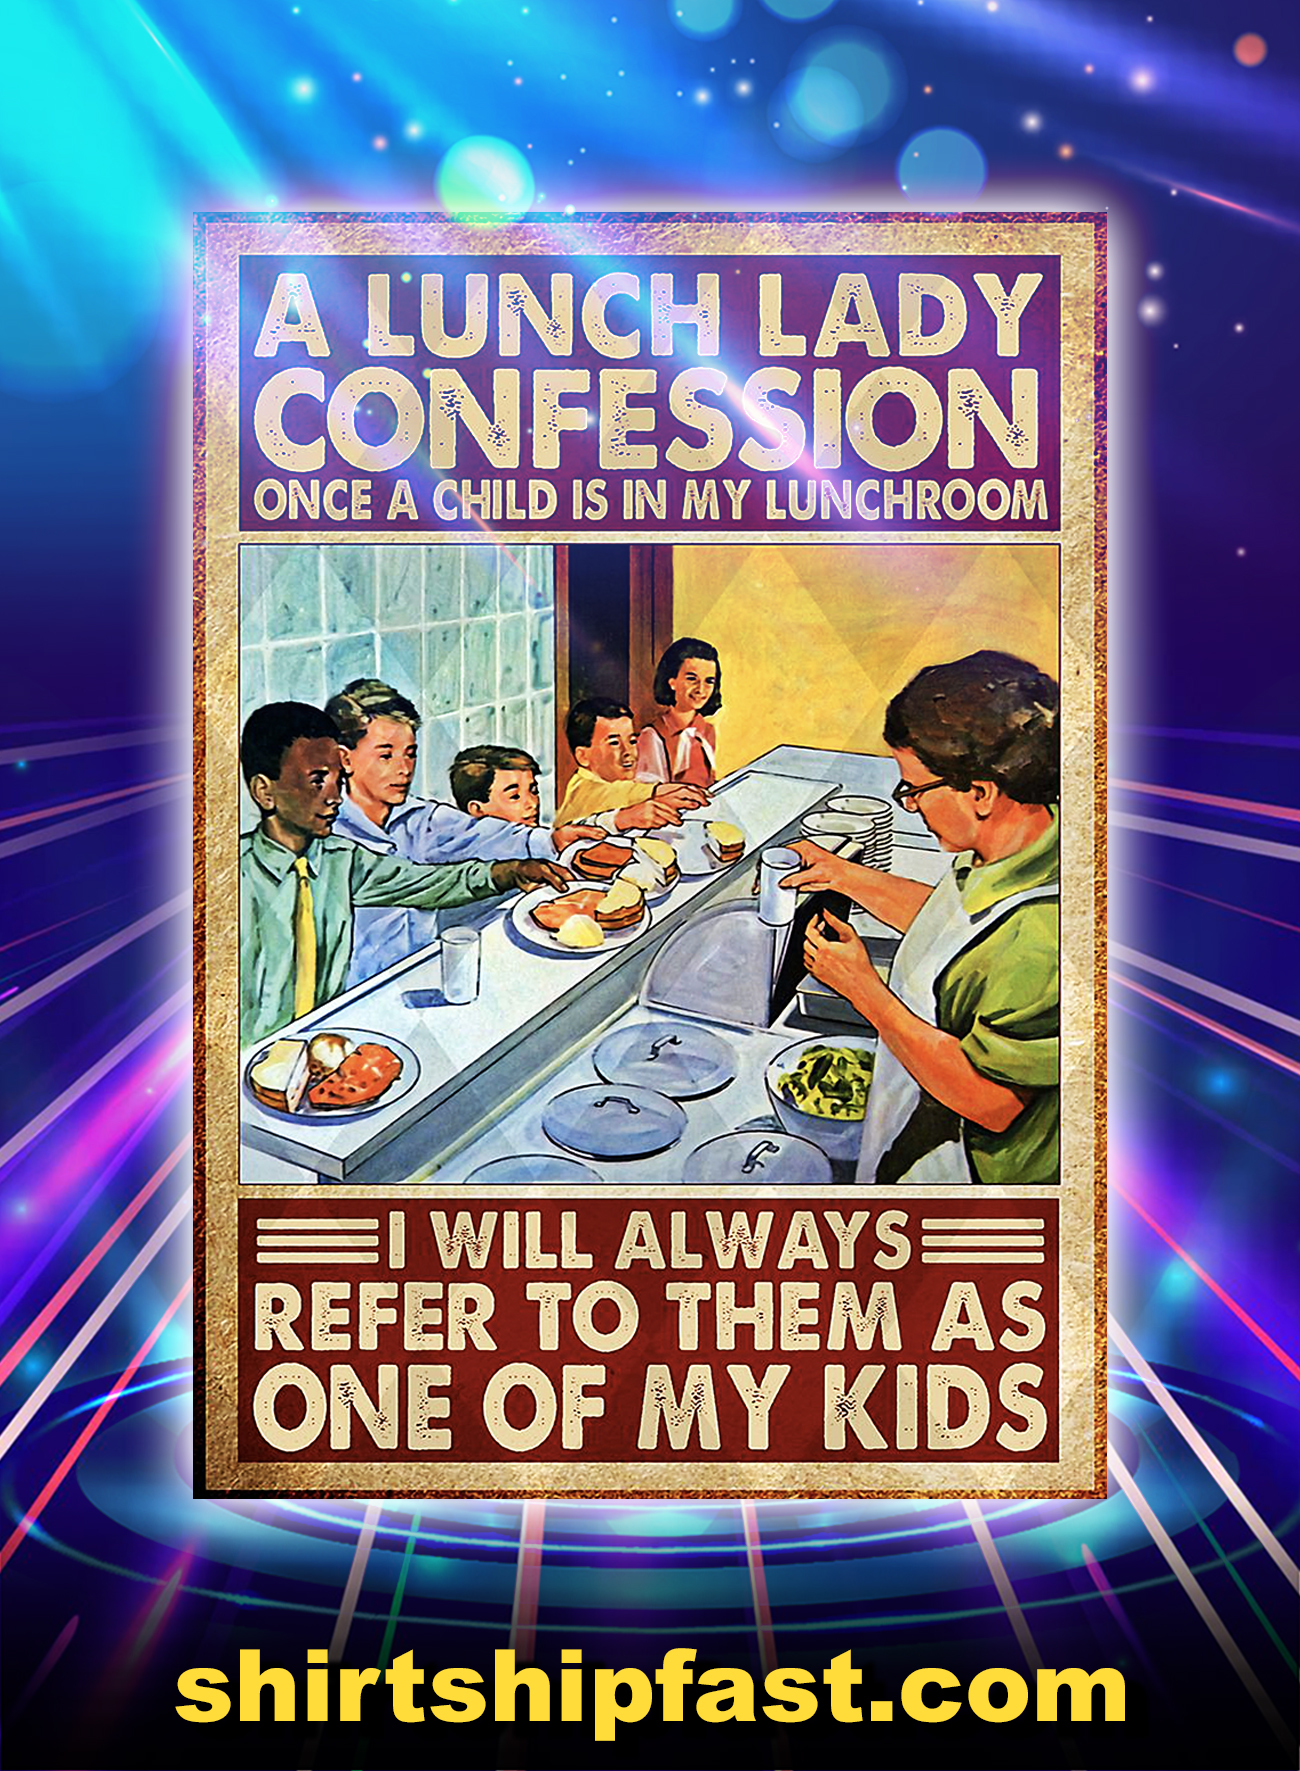 A lunch lady confession i will always refer to them as one of my kid poster - A4